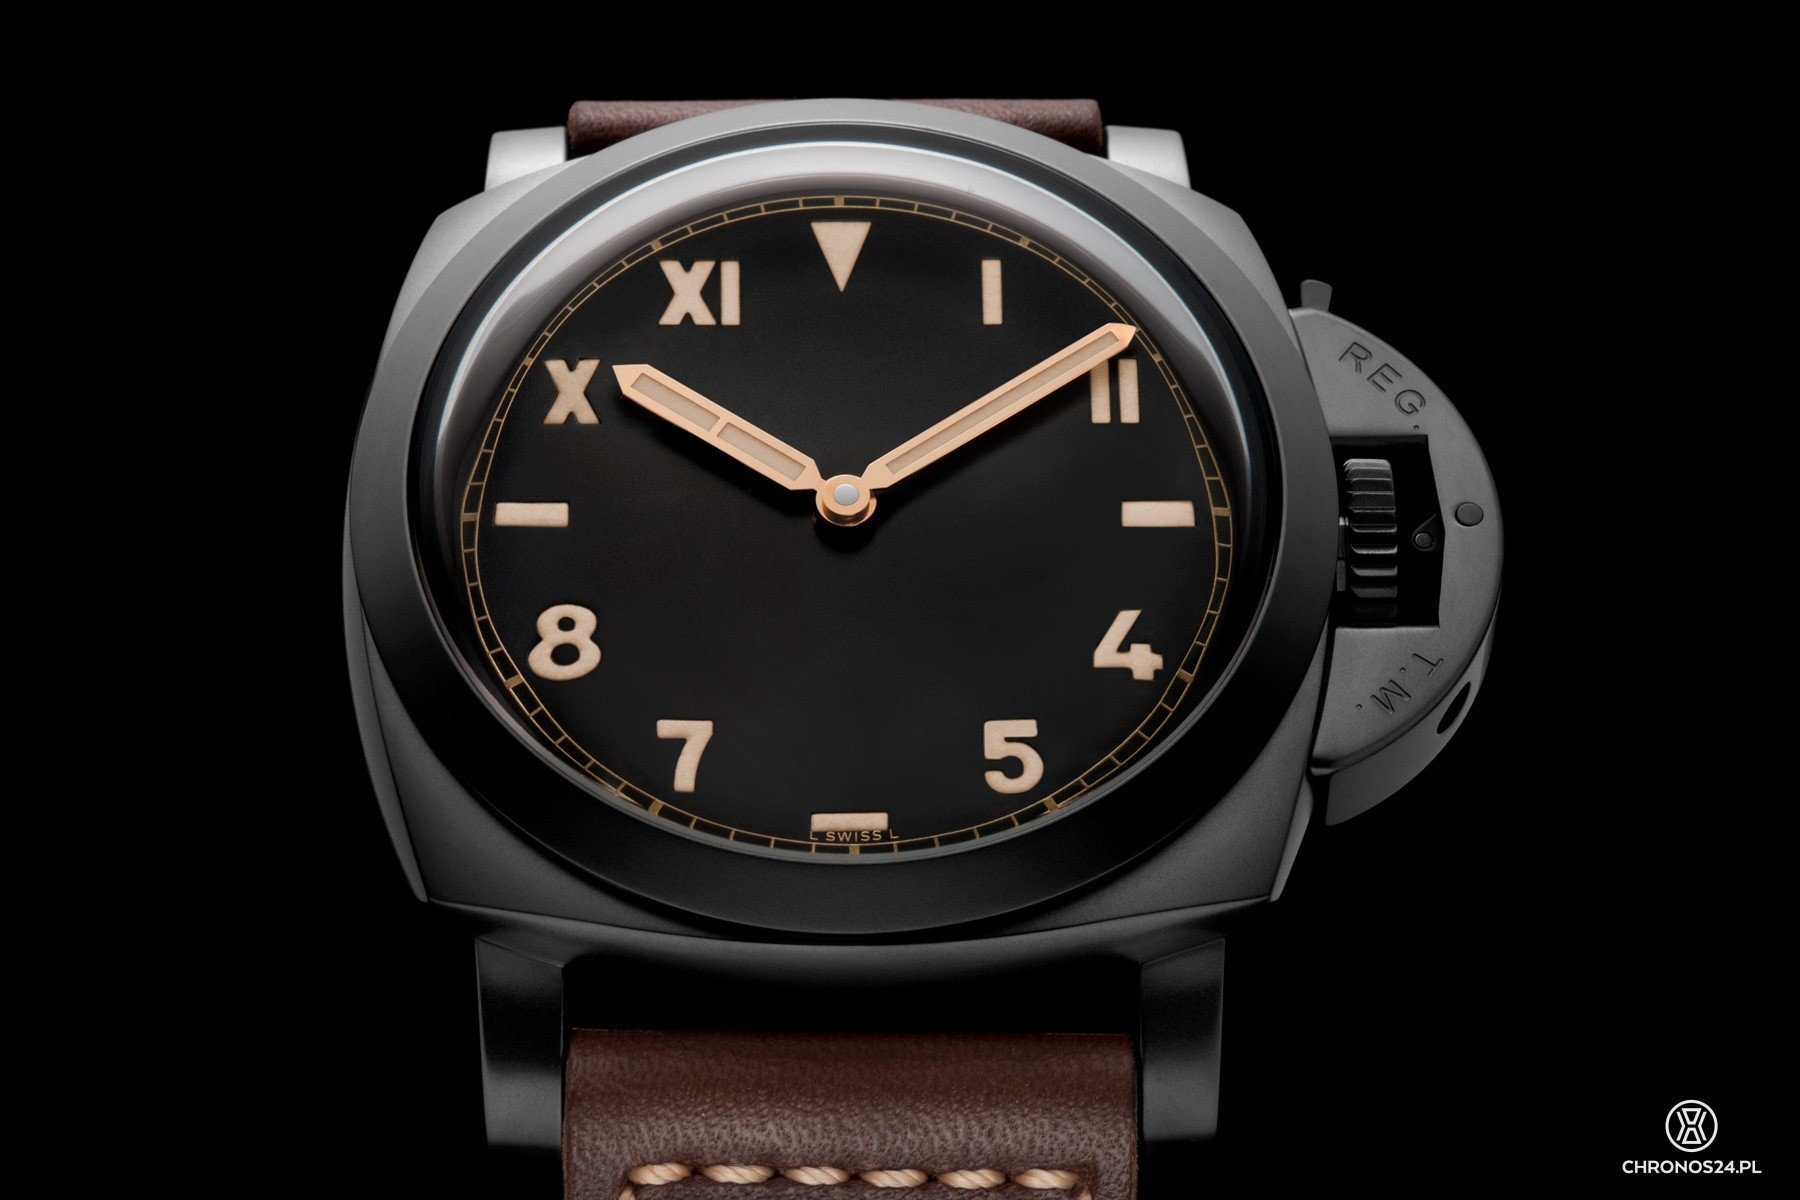 Officine Panerai Luminor 1950 3 Days Titanio DLC [cena]